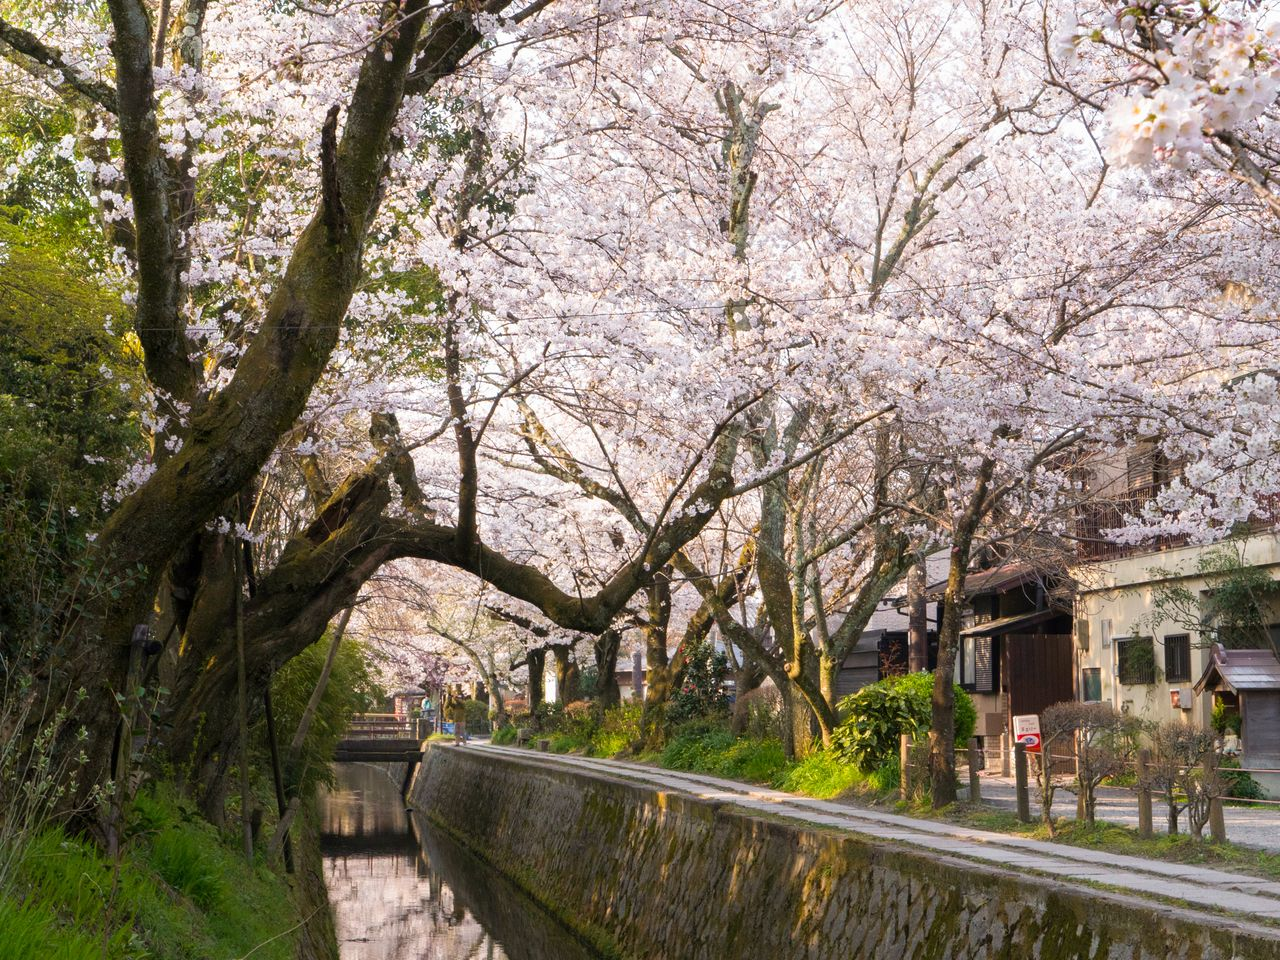 Small stone bridges add to the scenic view of the canal and cherry blossoms.